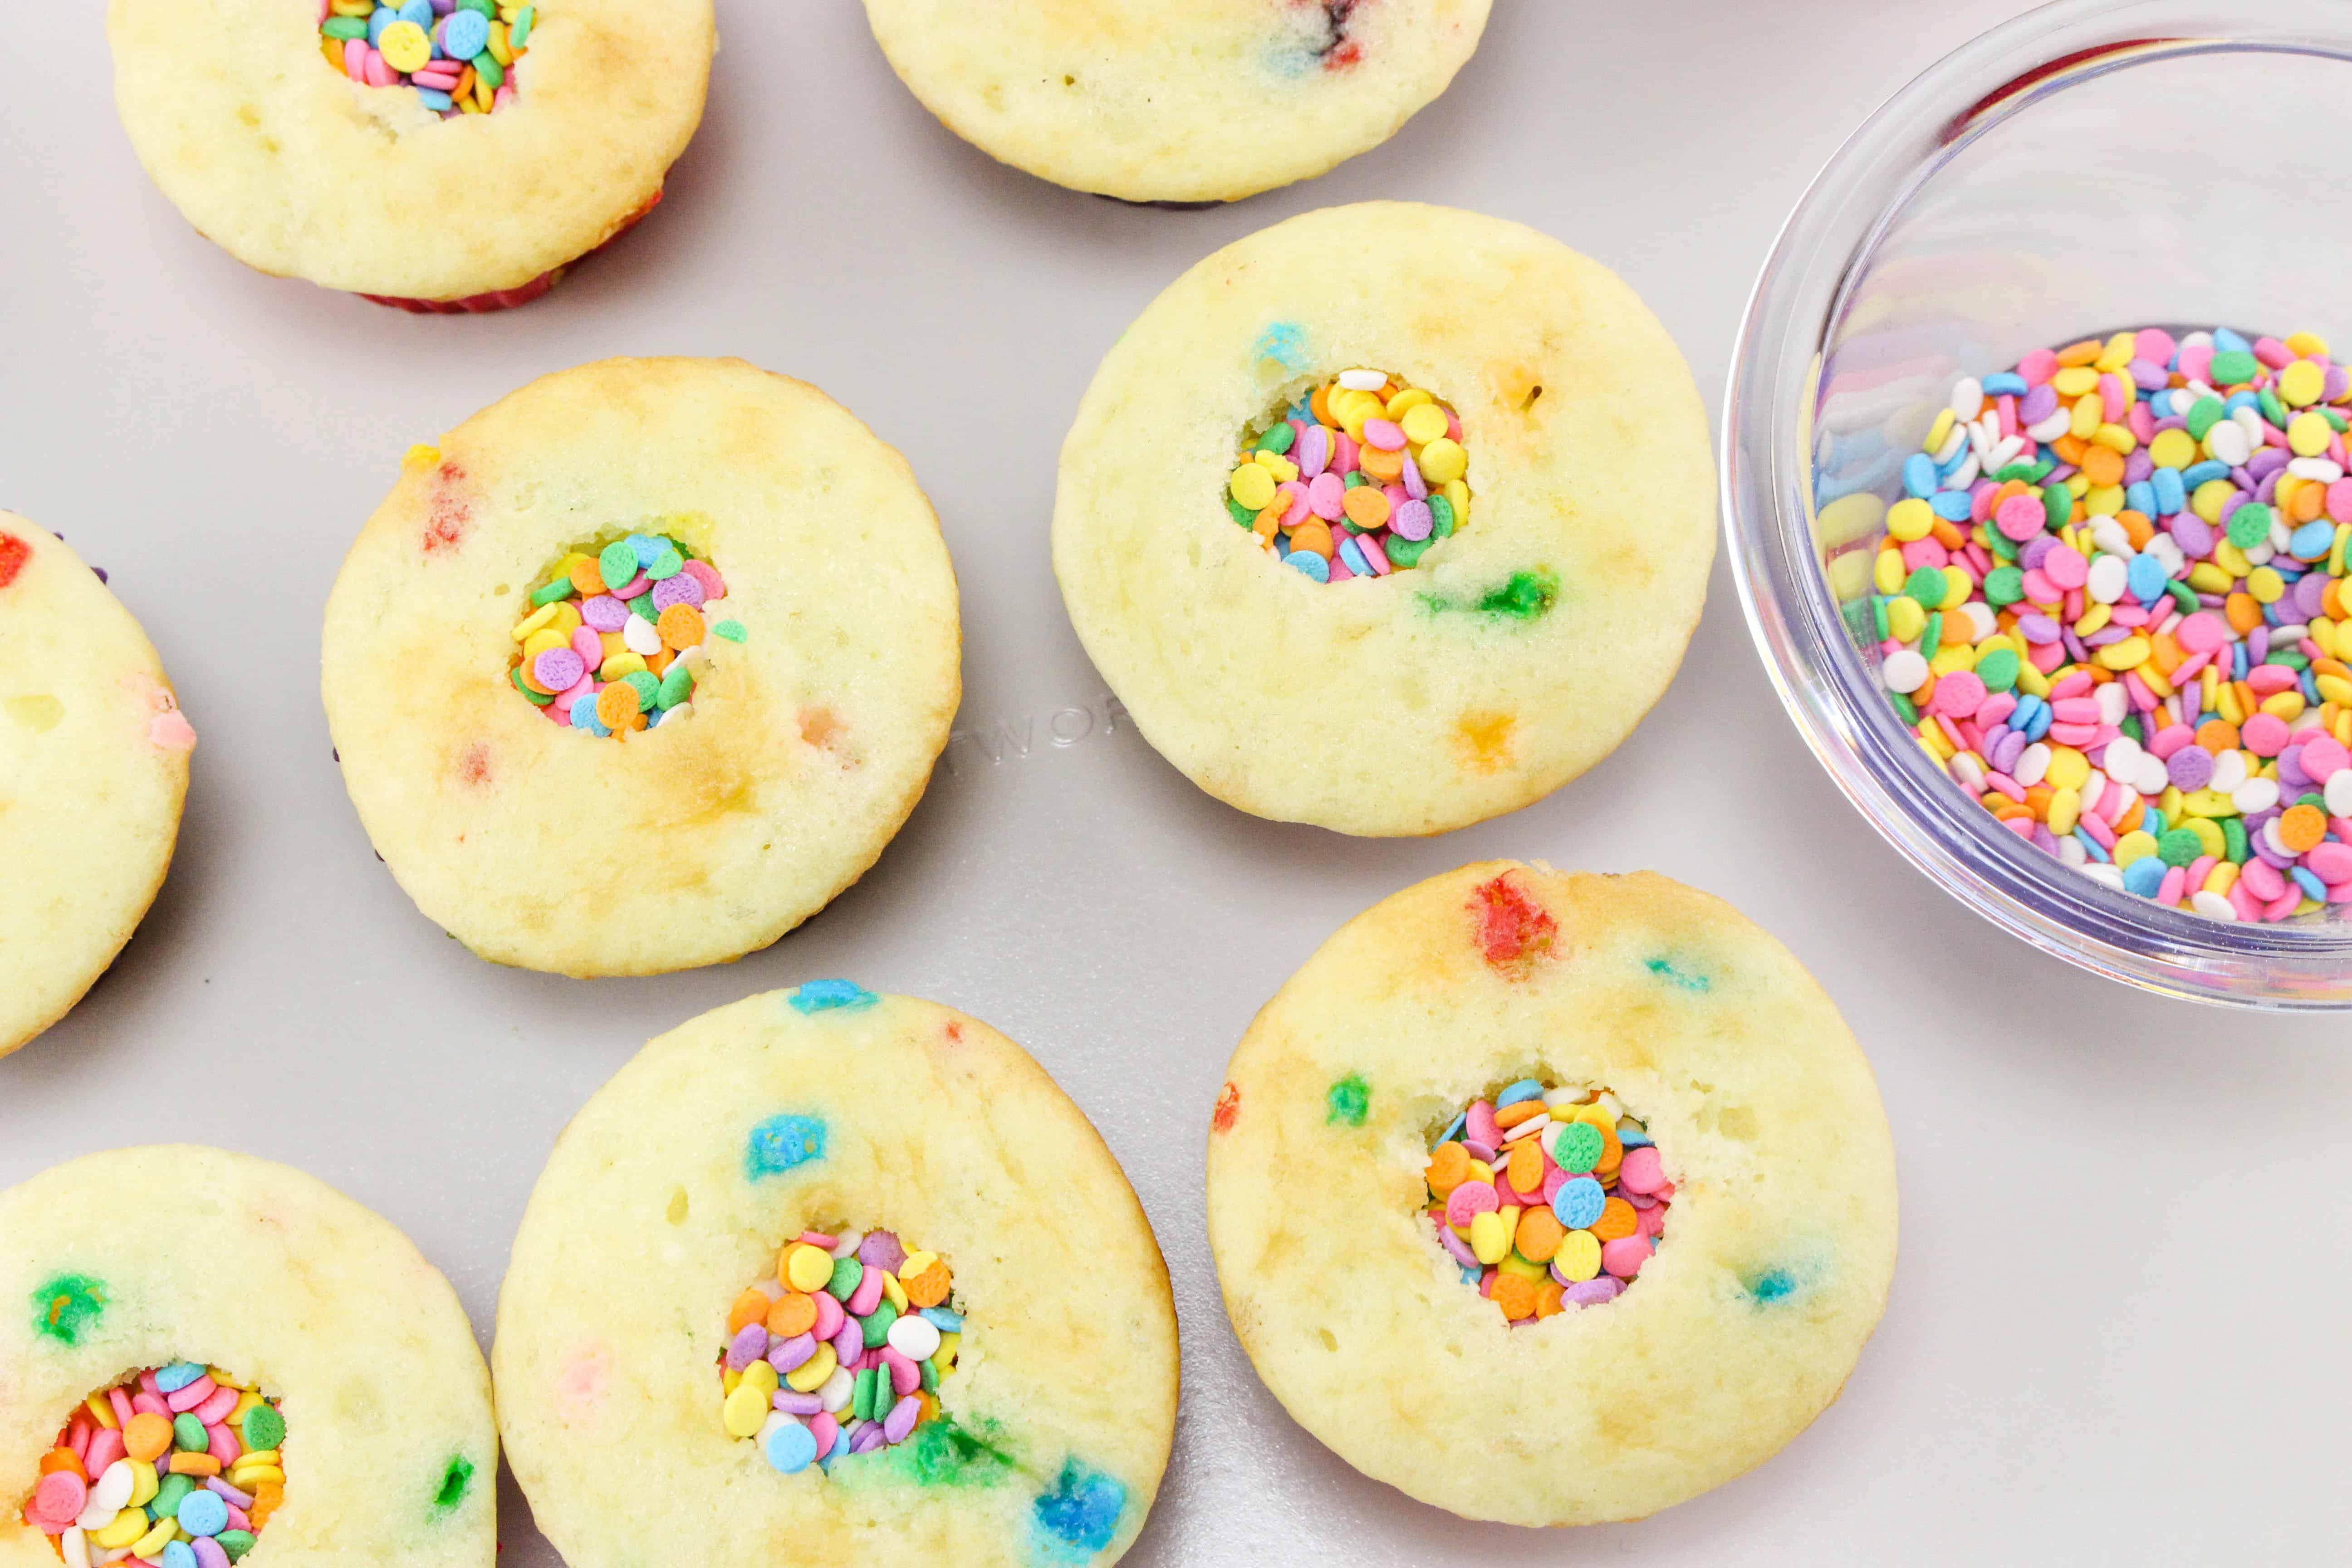 Oh the Places You'll Go Dr. Seuss Cupcakes Recipe